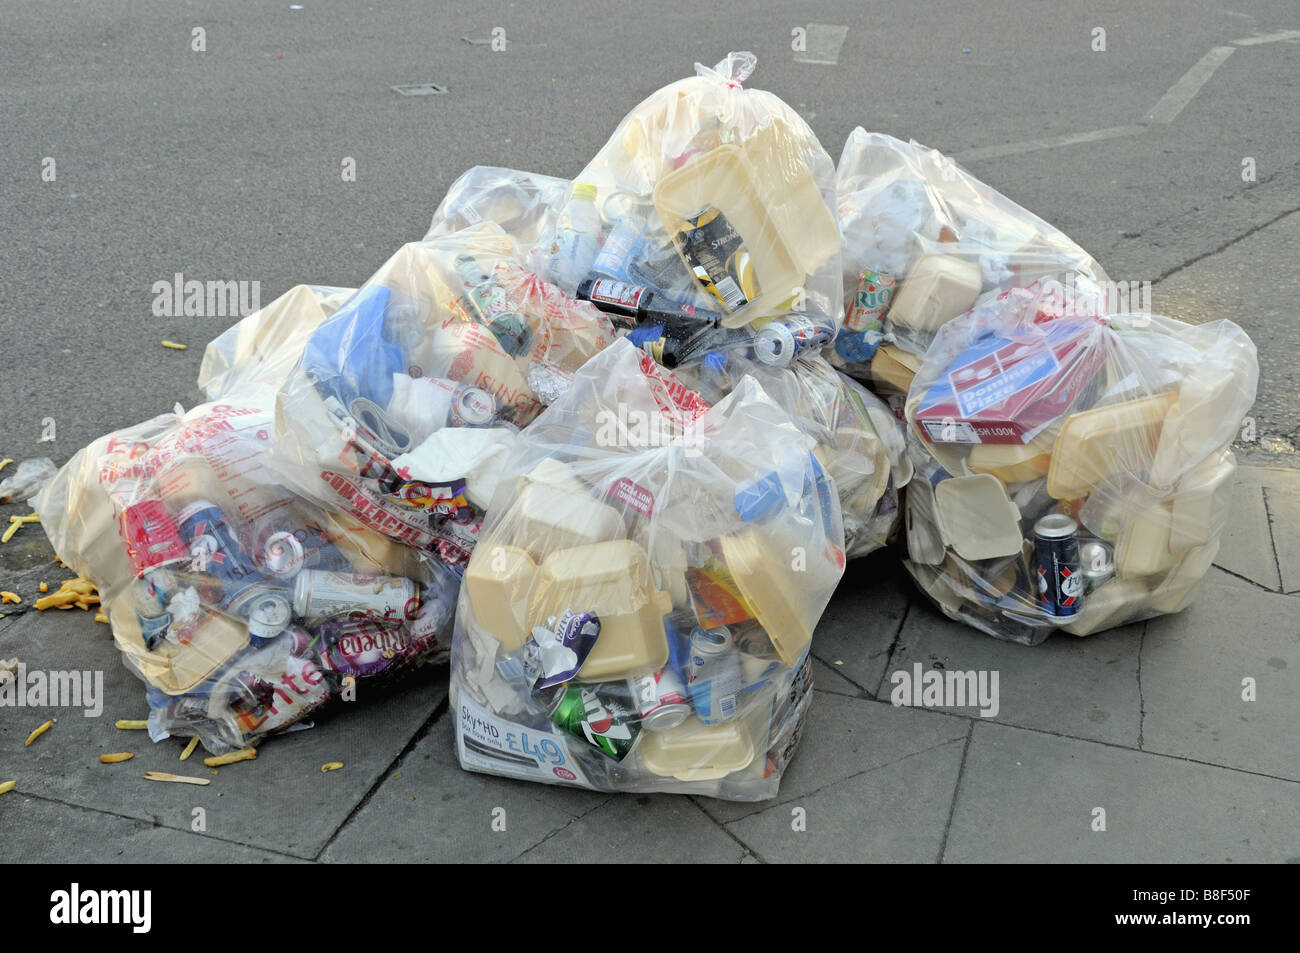 Bag of rubbish some of which could be recycled destined for landfill London England UK - Stock Image